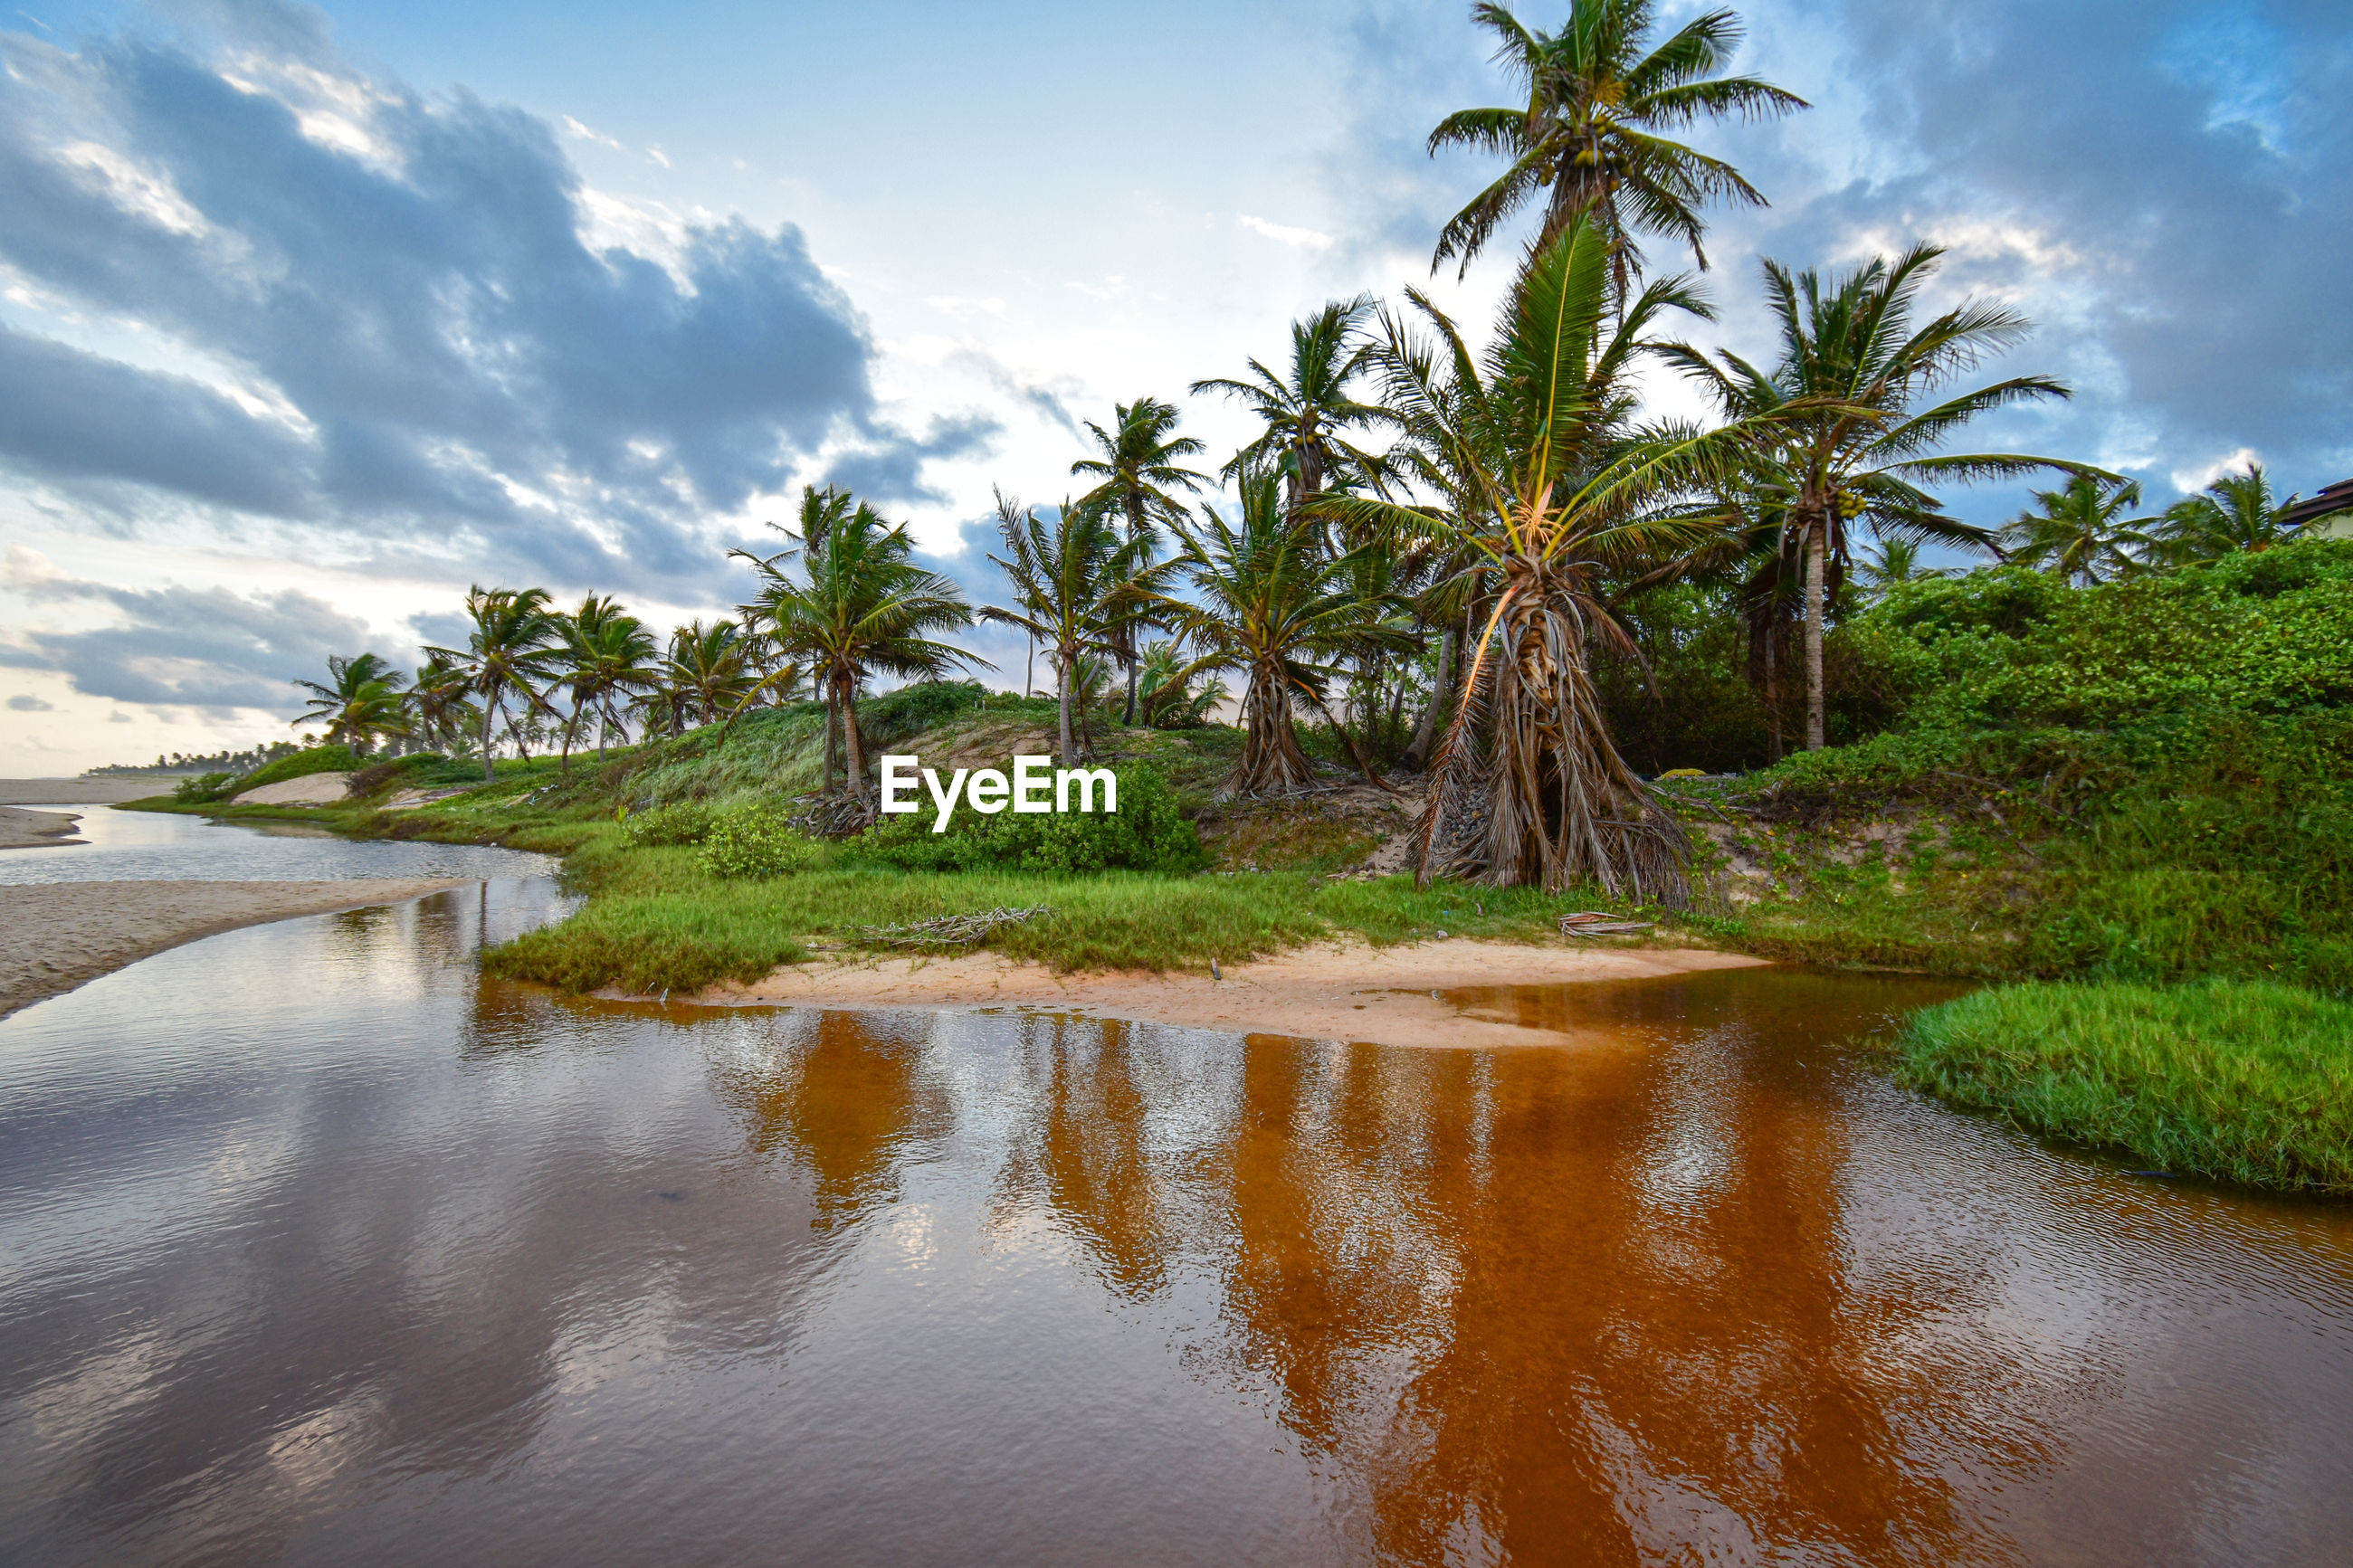 SCENIC VIEW OF PALM TREES ON RIVERBANK AGAINST SKY